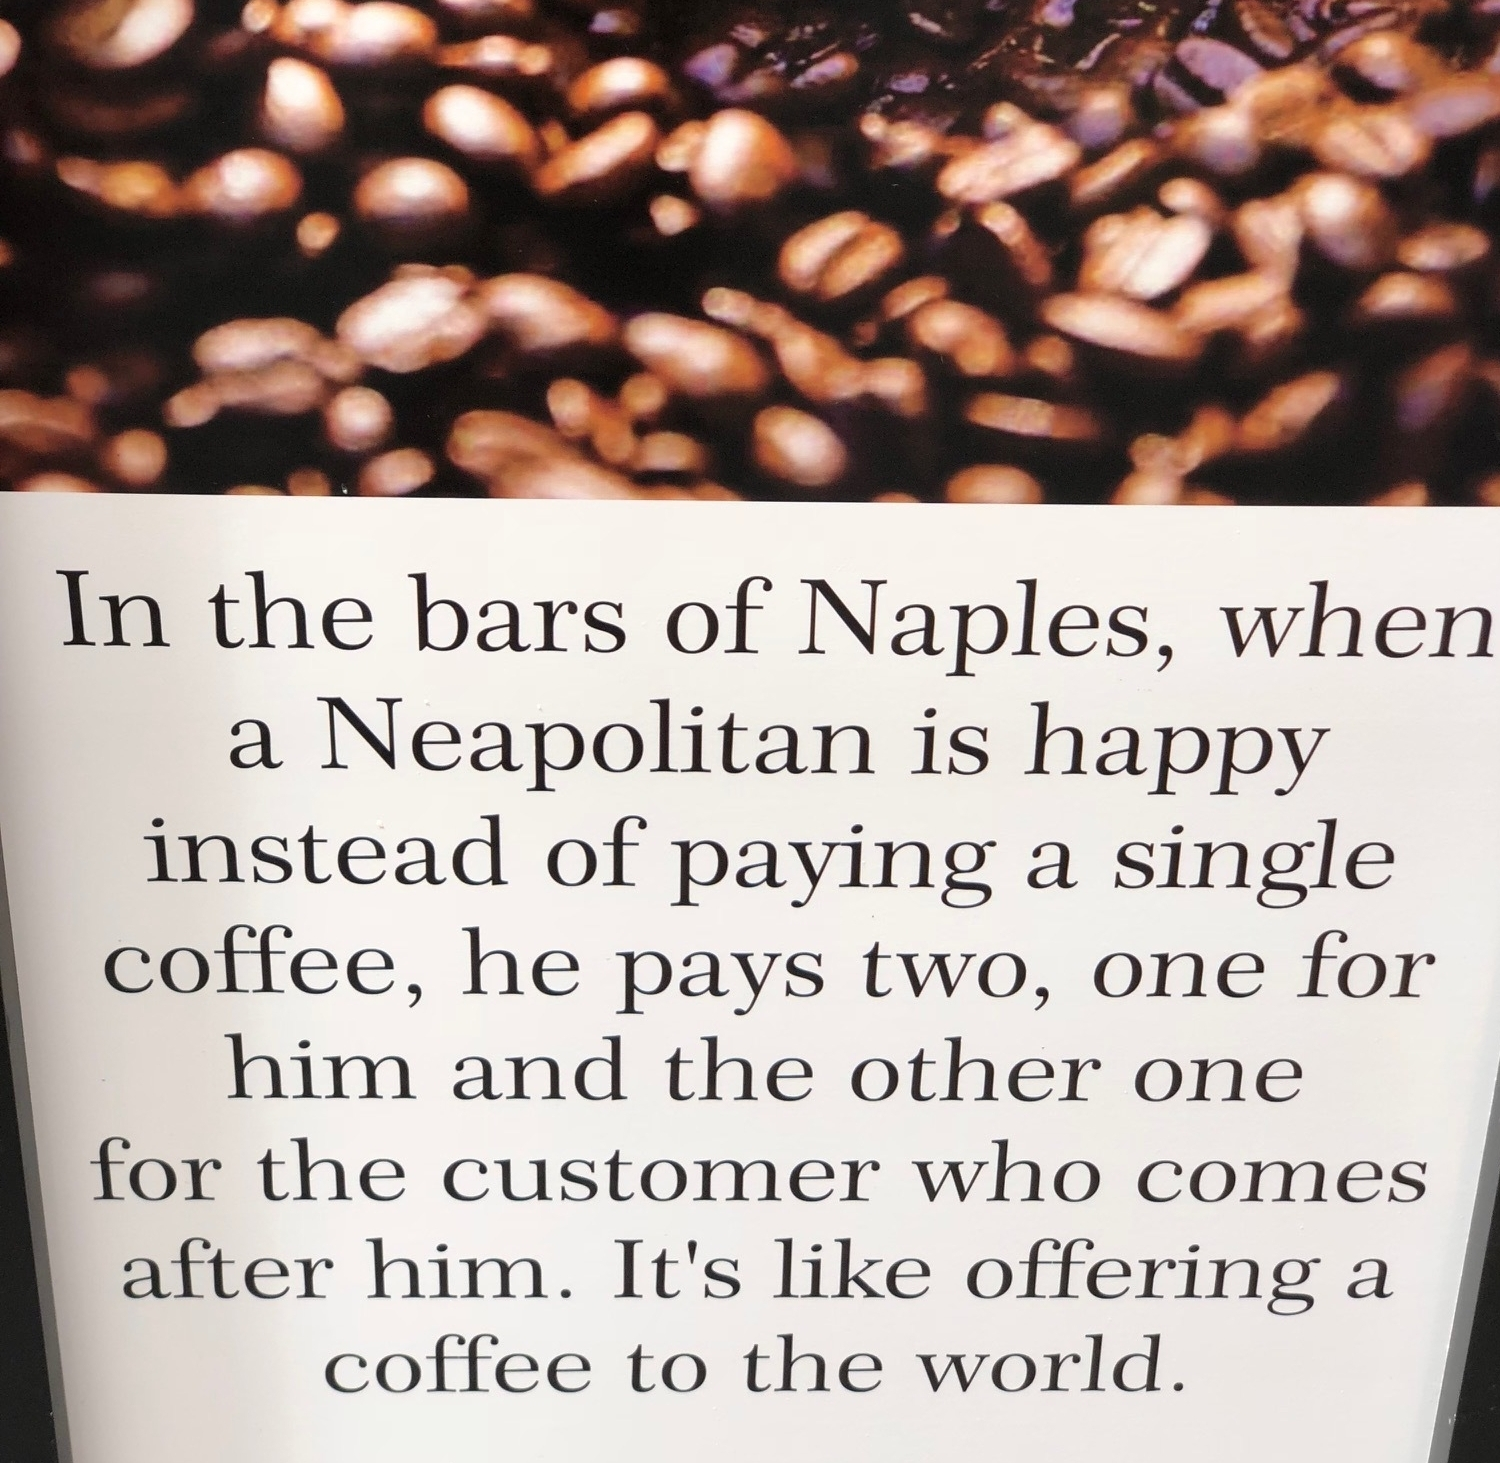 Try this next time you are in a cafe ..?